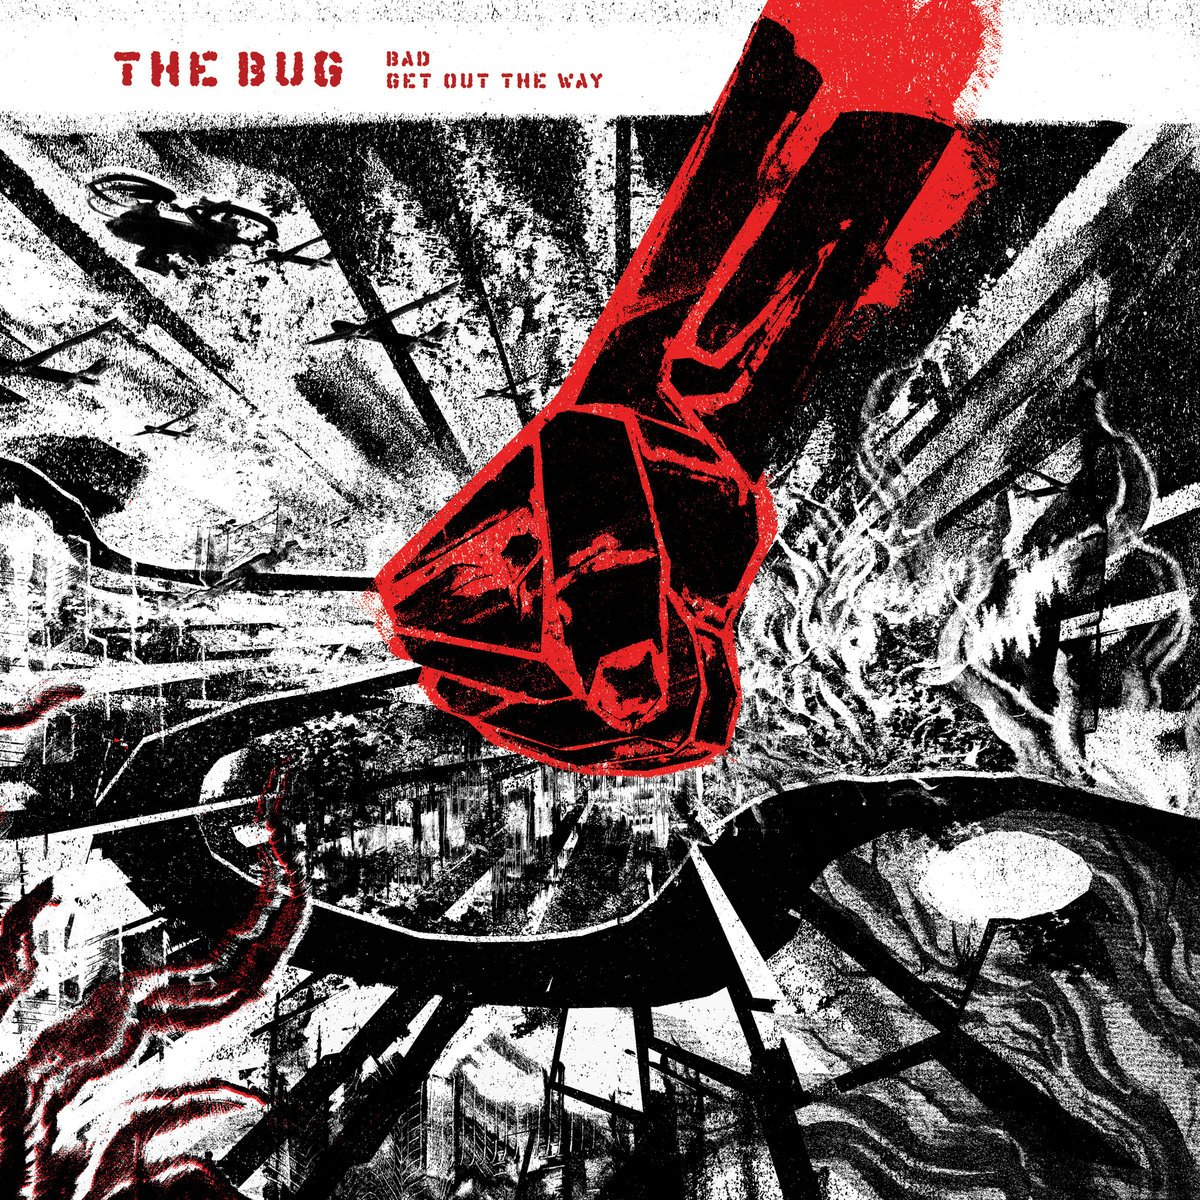 BUG - Bad / Get Out The Way - Amazon.com Music